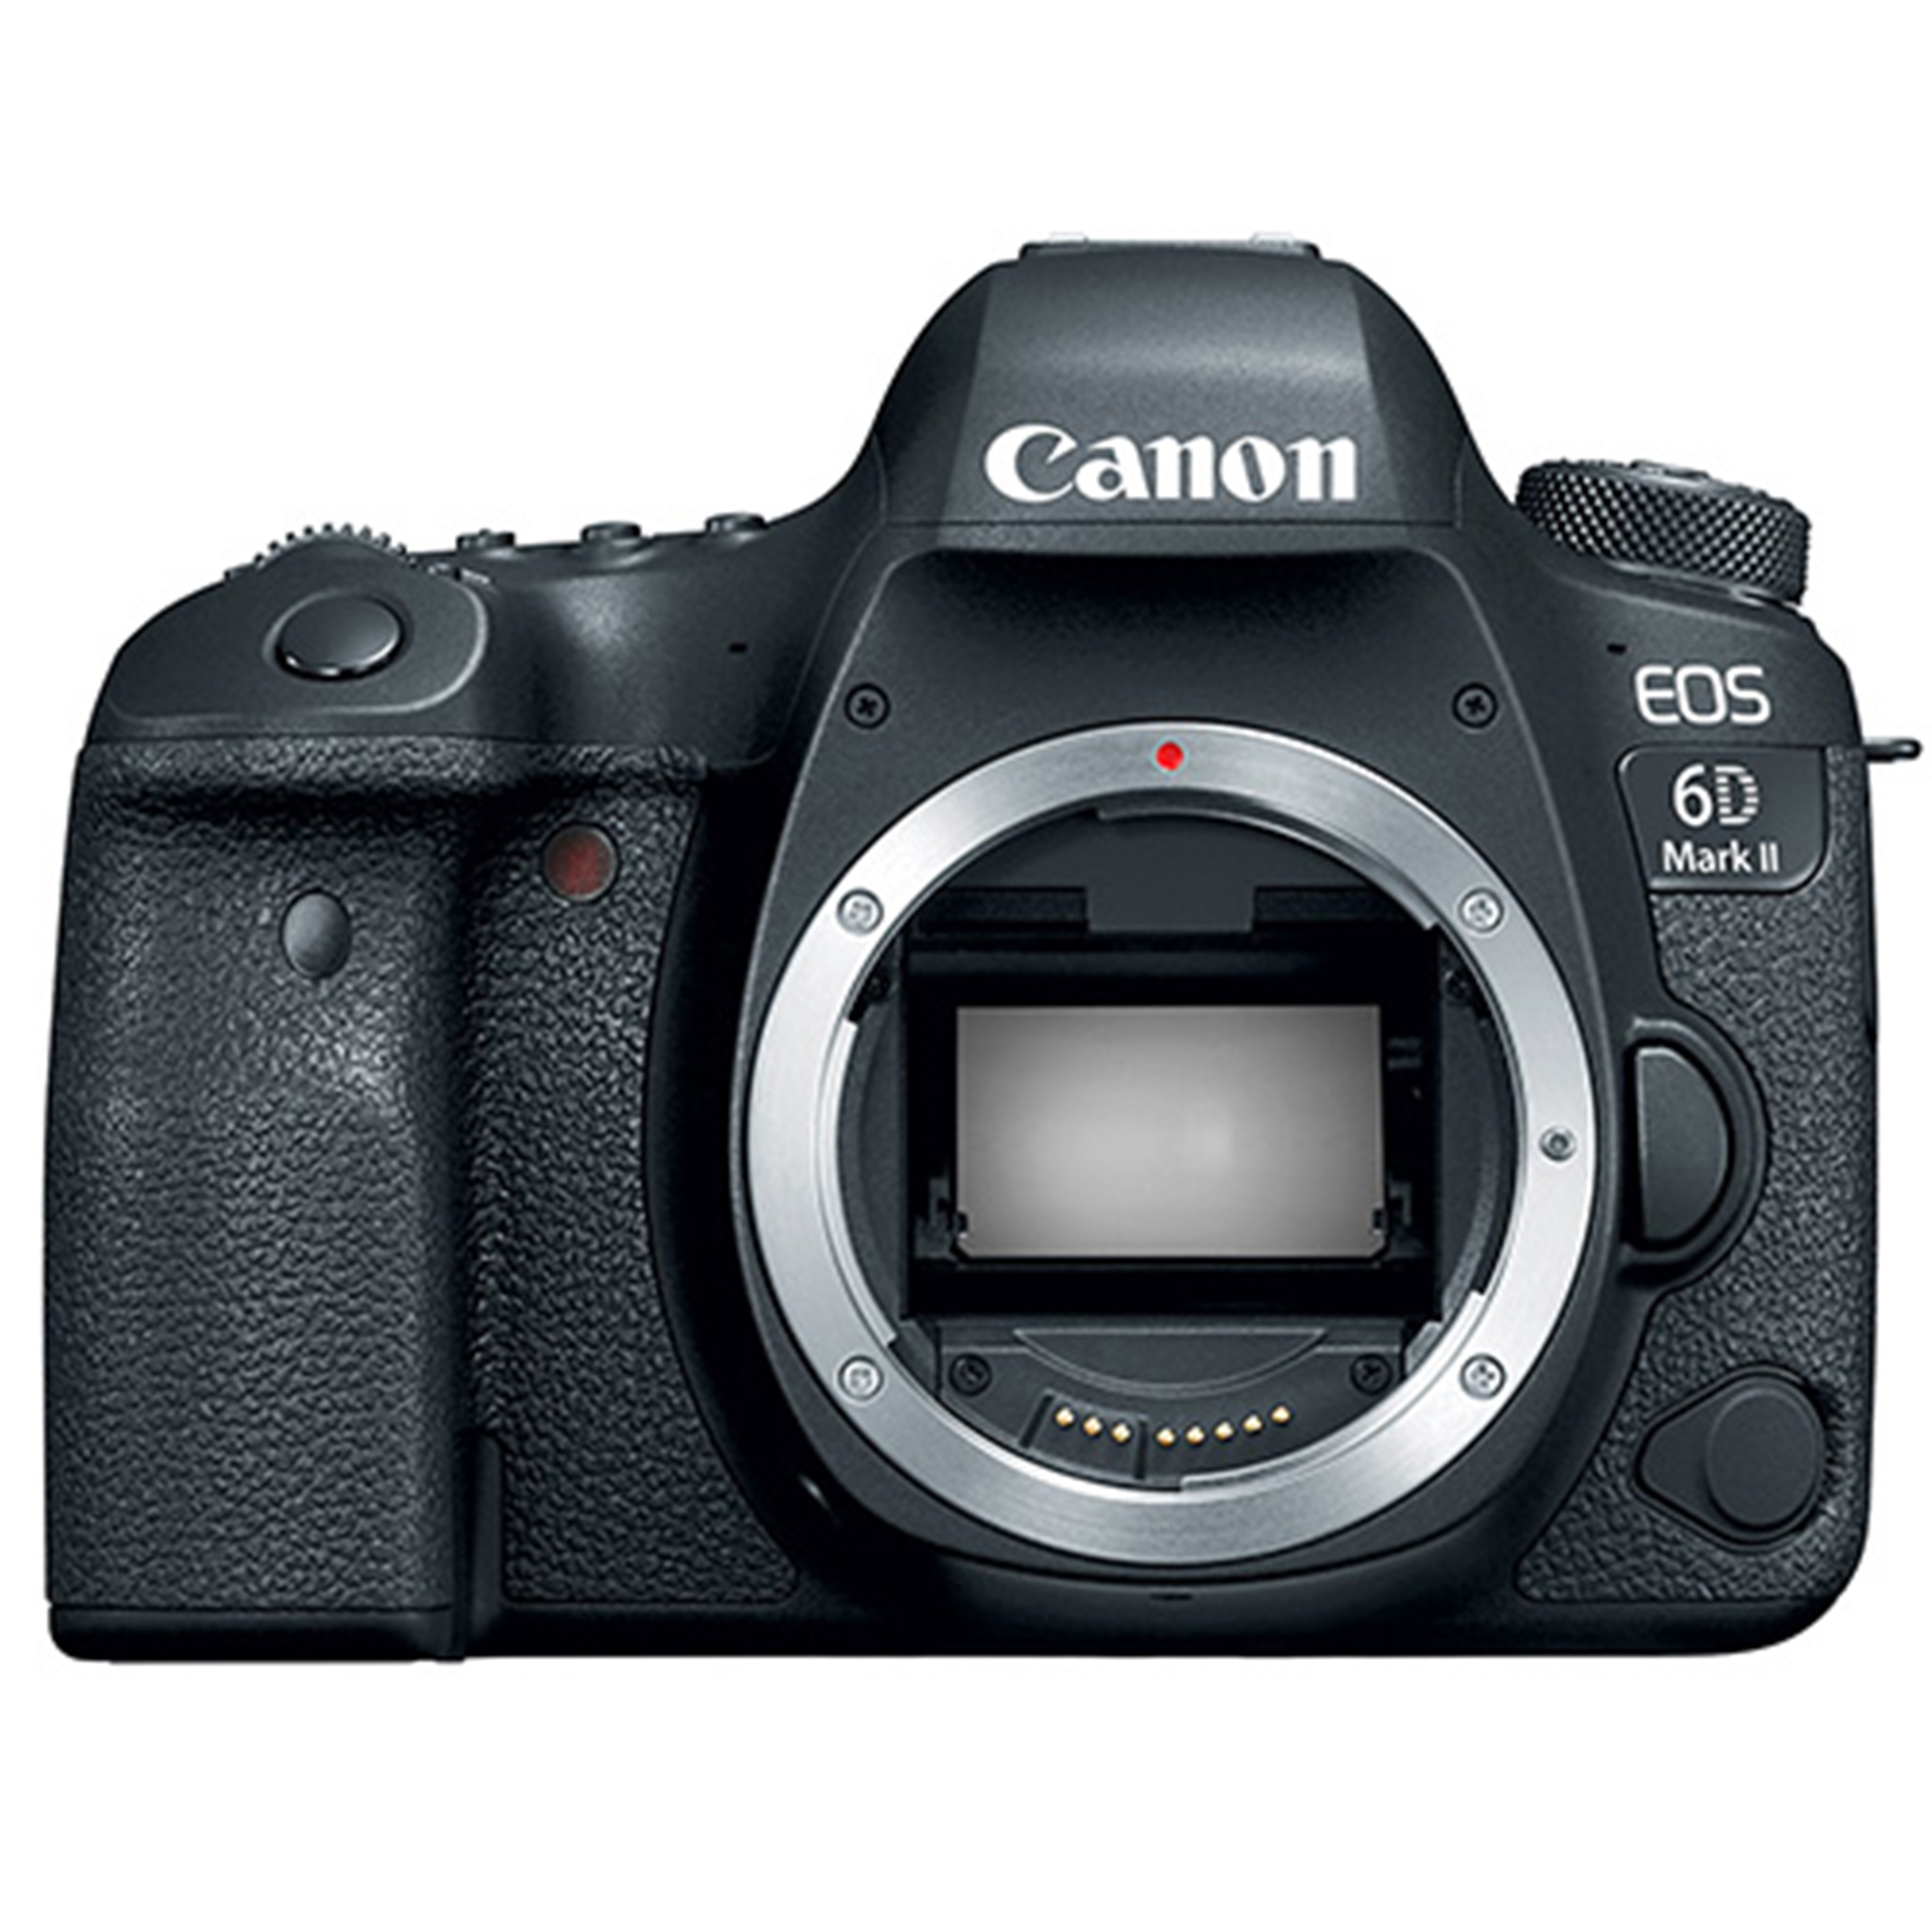 Canon EOS 6D Mark II DSLR Camera (Body Only) +FREE VANGUARD KINRAY 53 BAG & 8GB MEMORY CARD .